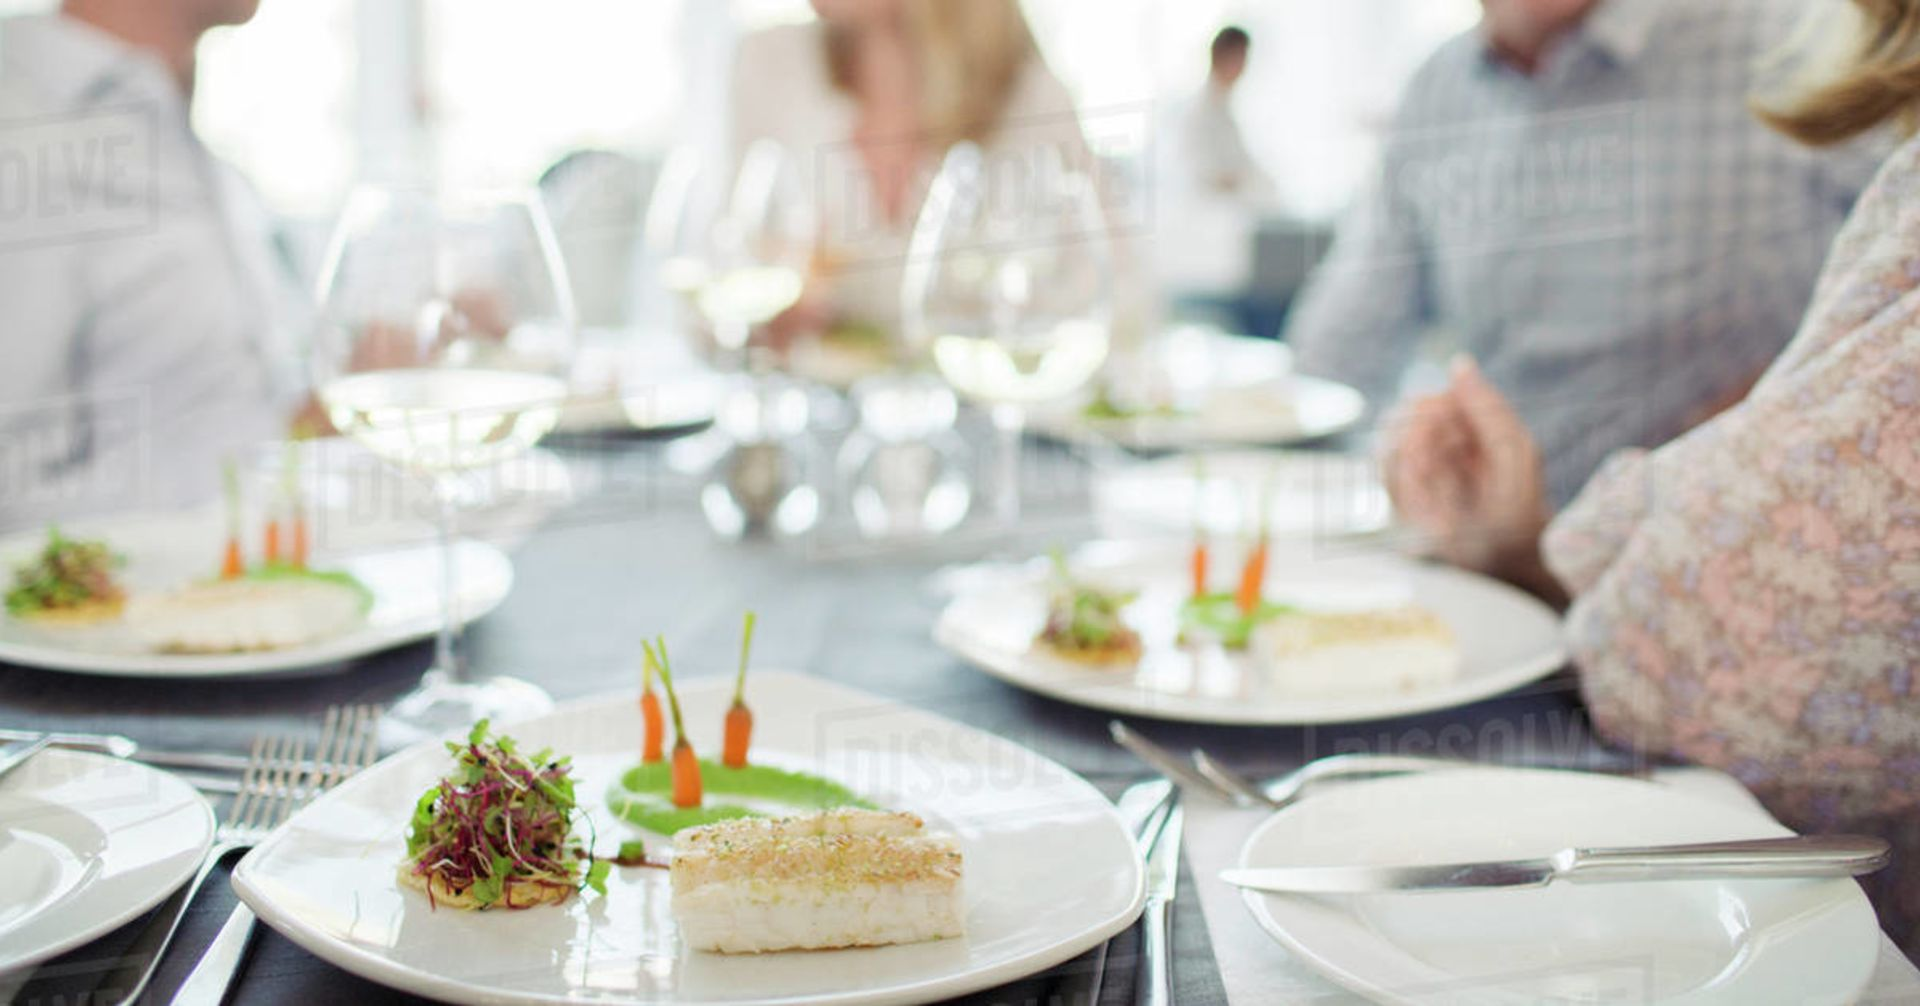 Want To Tour Local Restaurants?